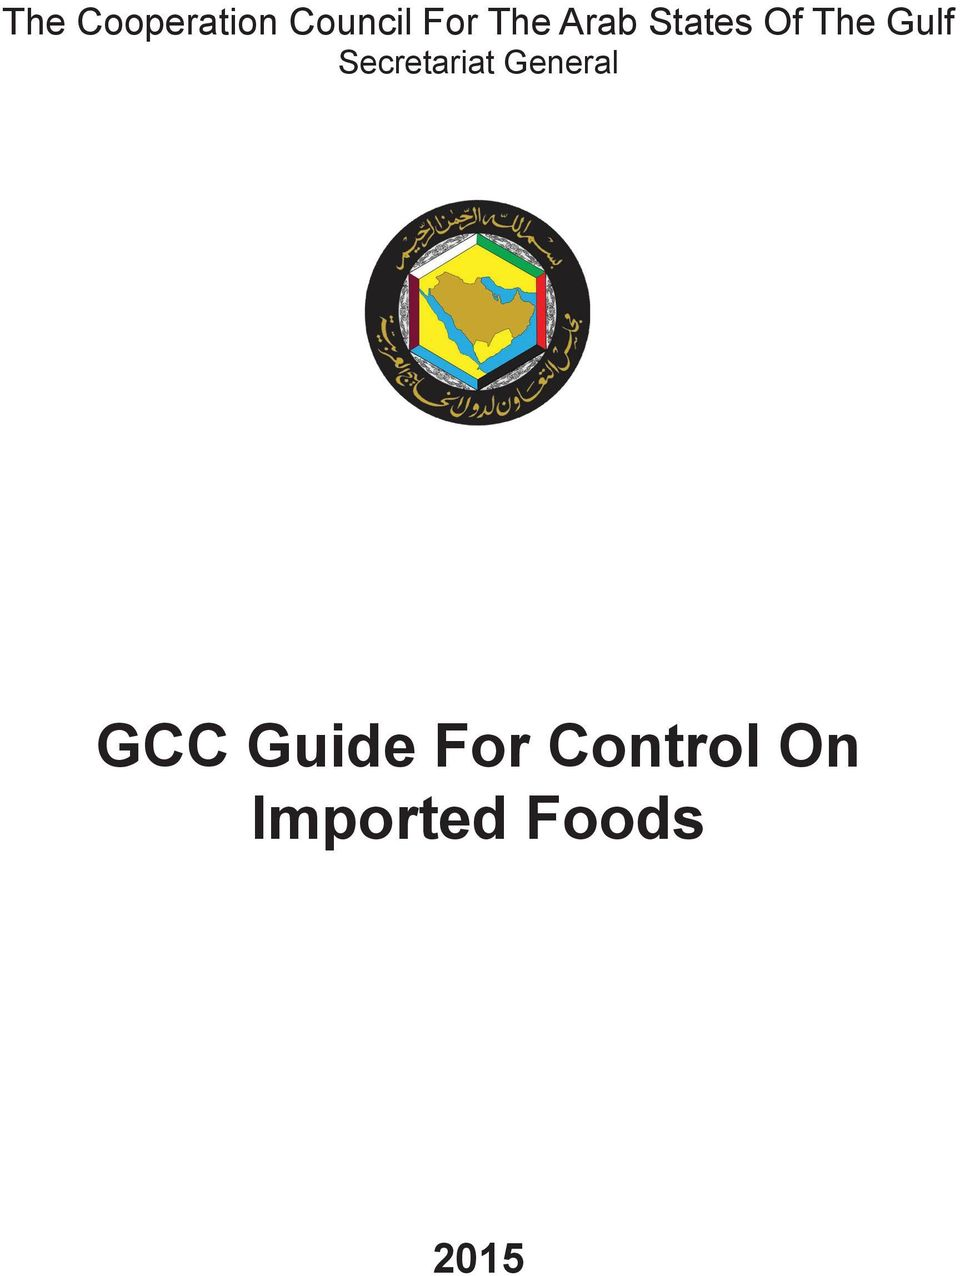 Secretariat General GCC Guide